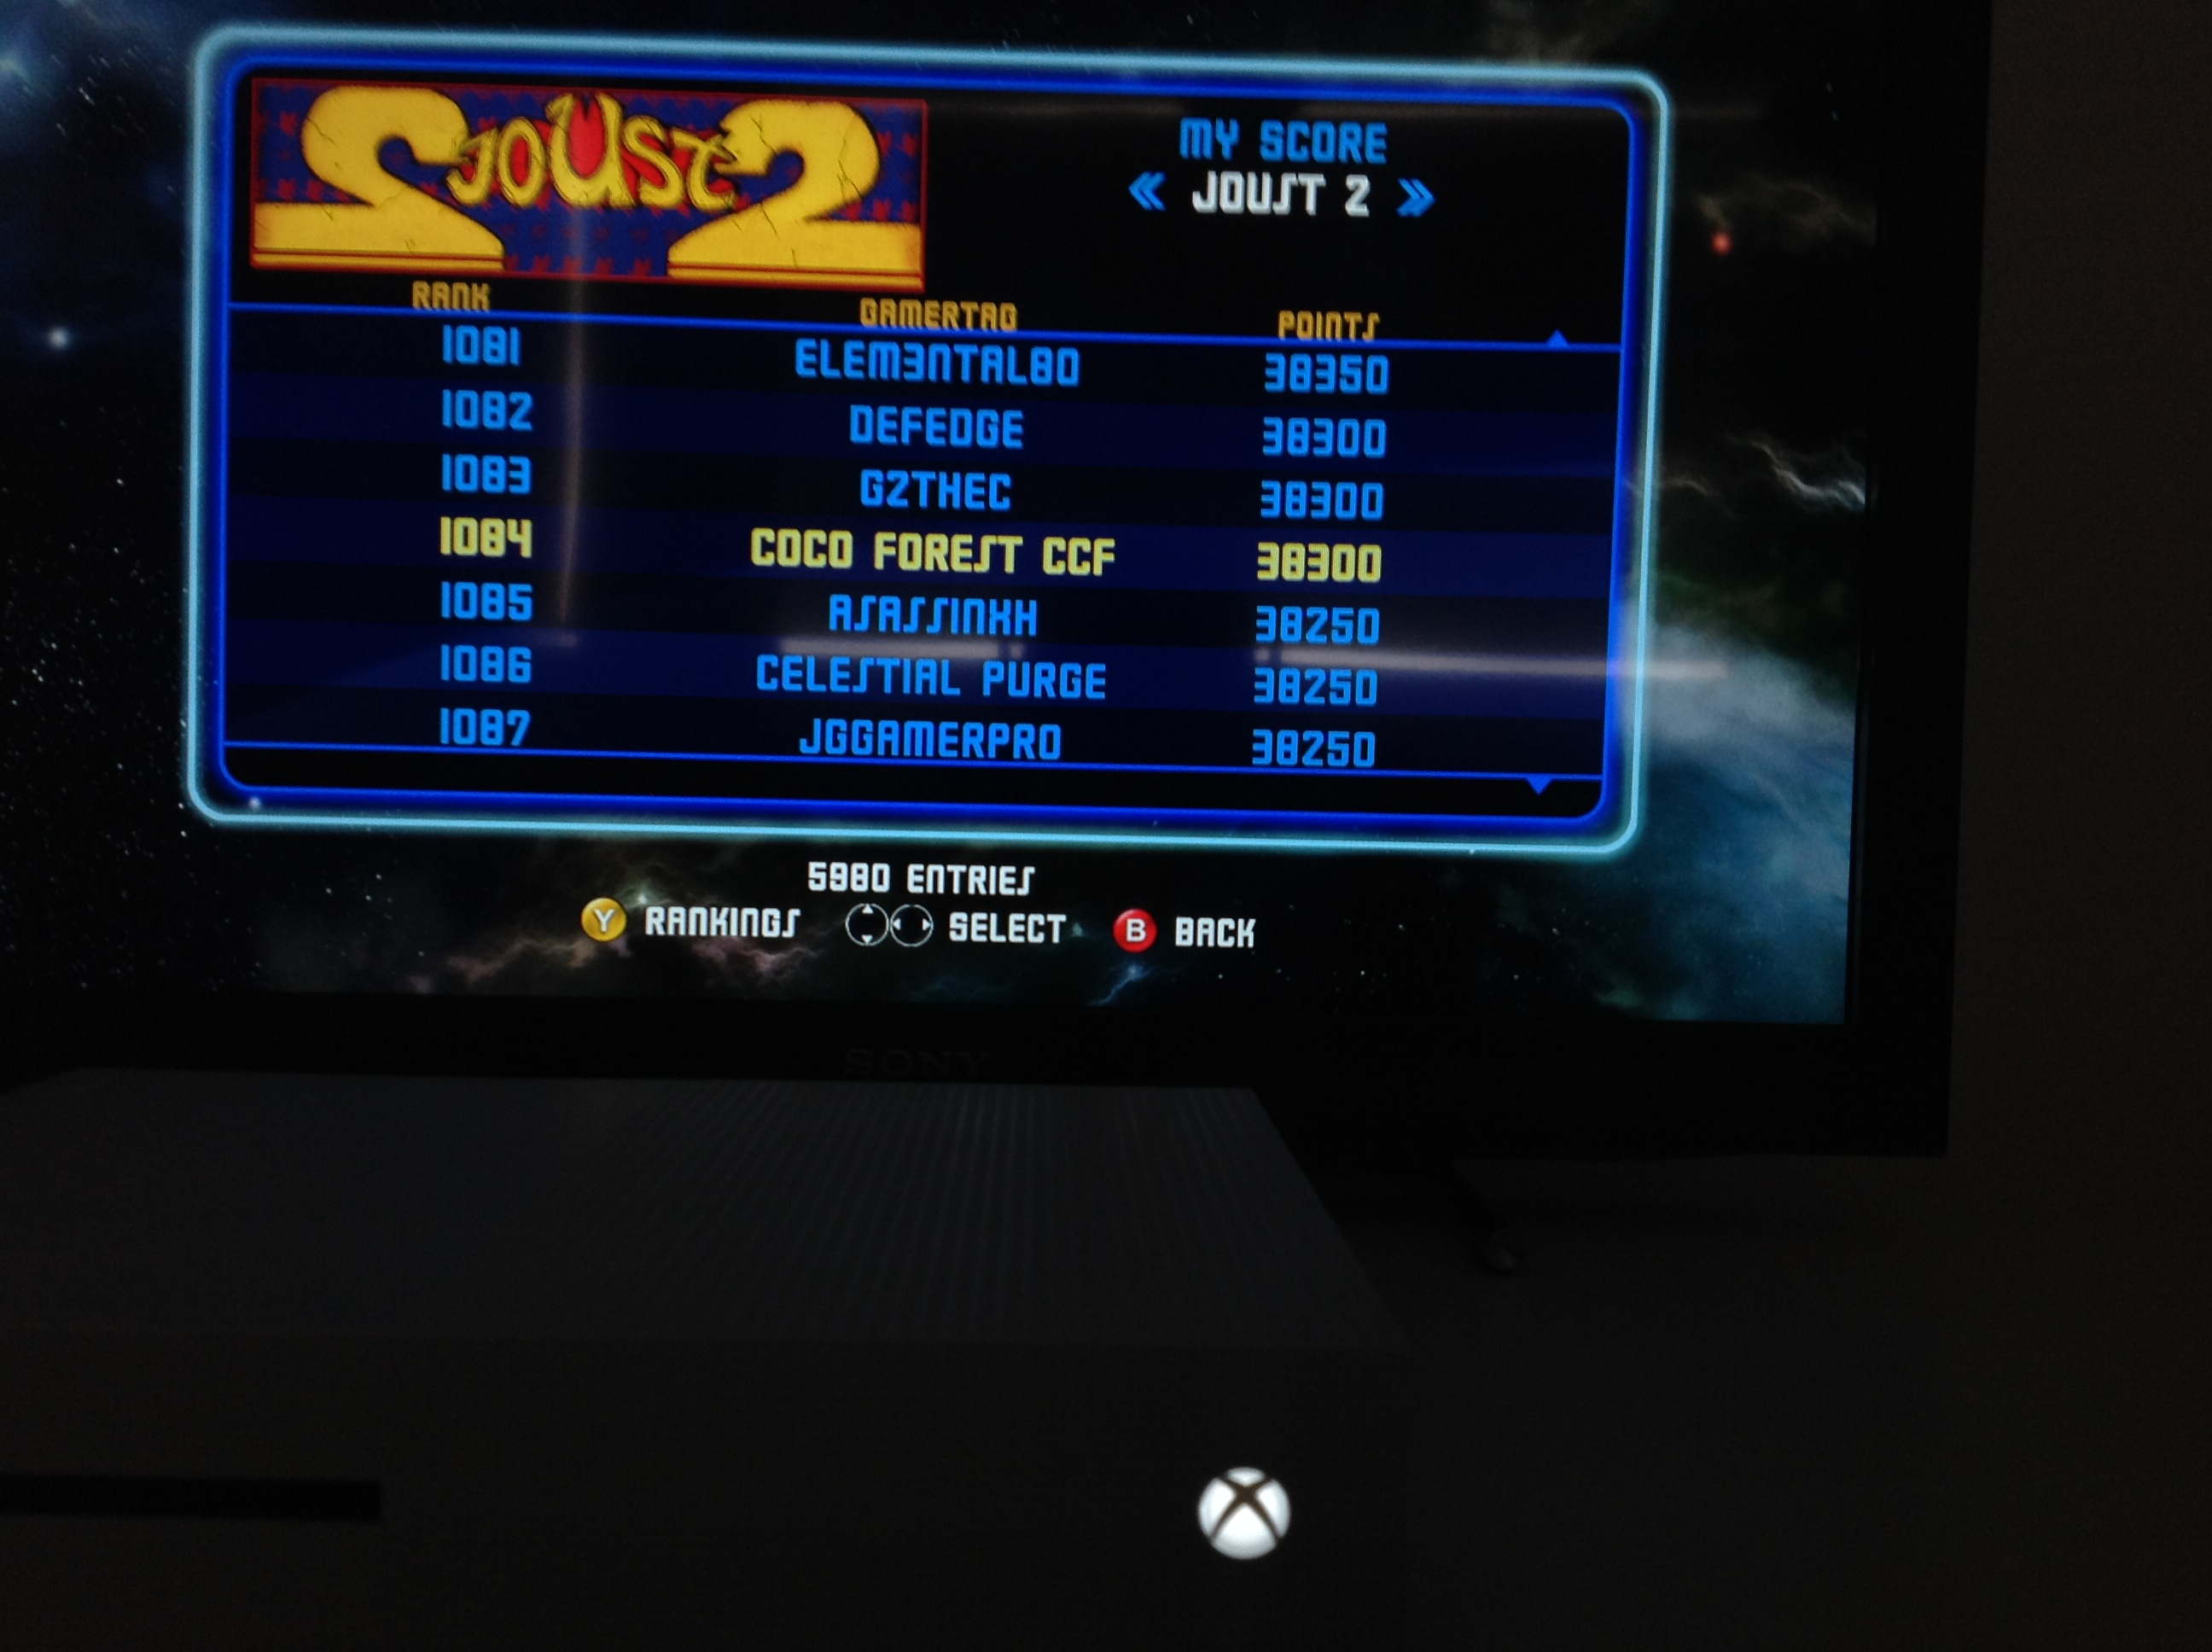 CoCoForest: Midway Arcade Origins: Joust II (Xbox 360) 38,300 points on 2019-05-26 01:50:15